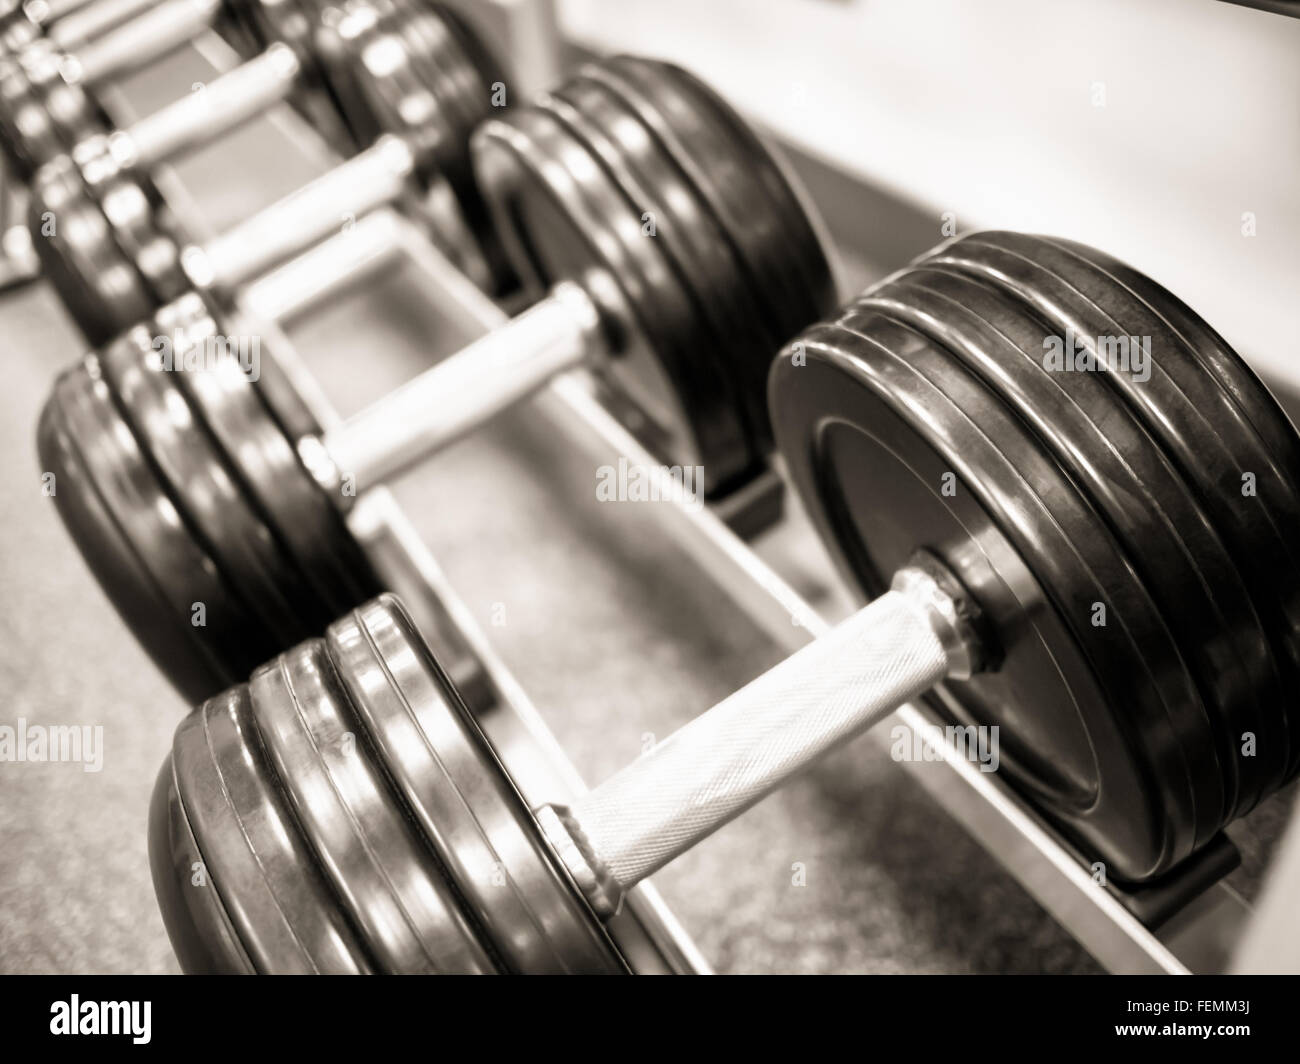 Dumbbell free weights on a rack at a health club gym - Stock Image